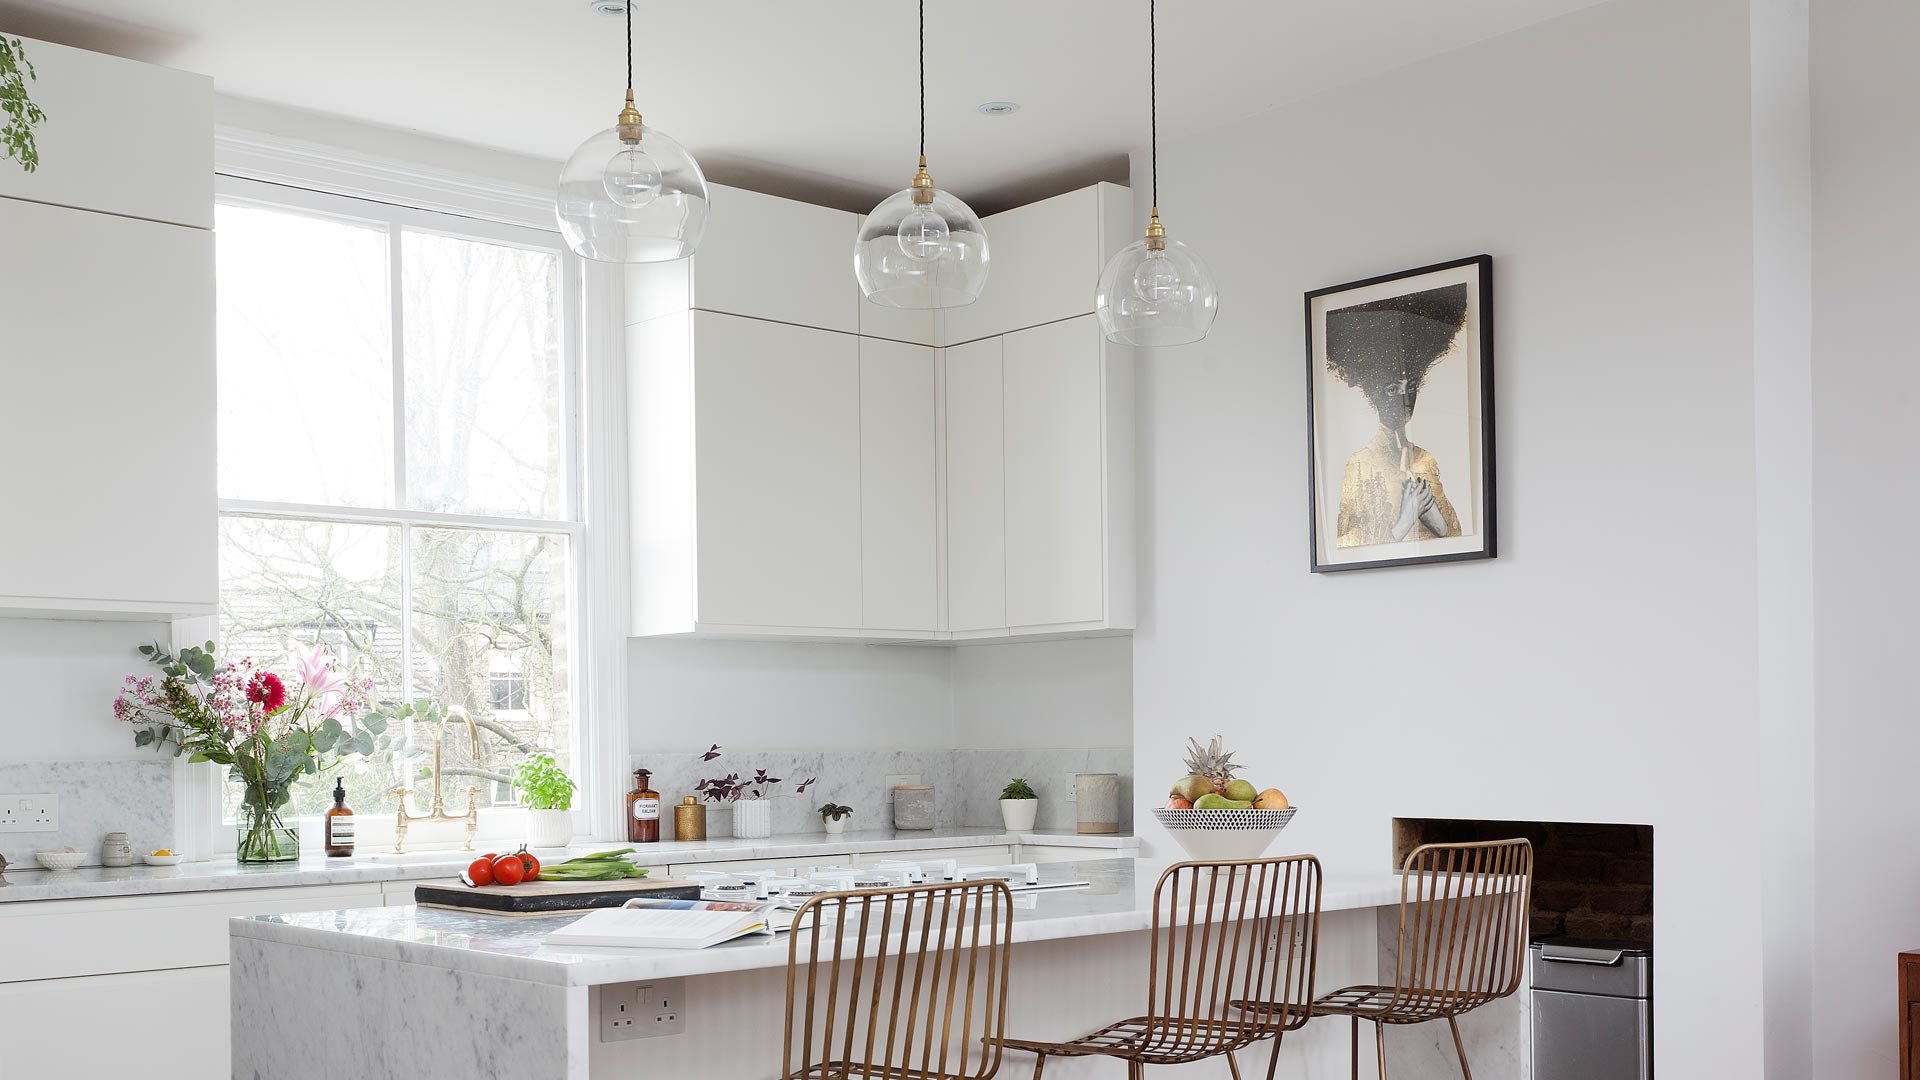 Our Eden globe pendants look perfect above this kitchen island